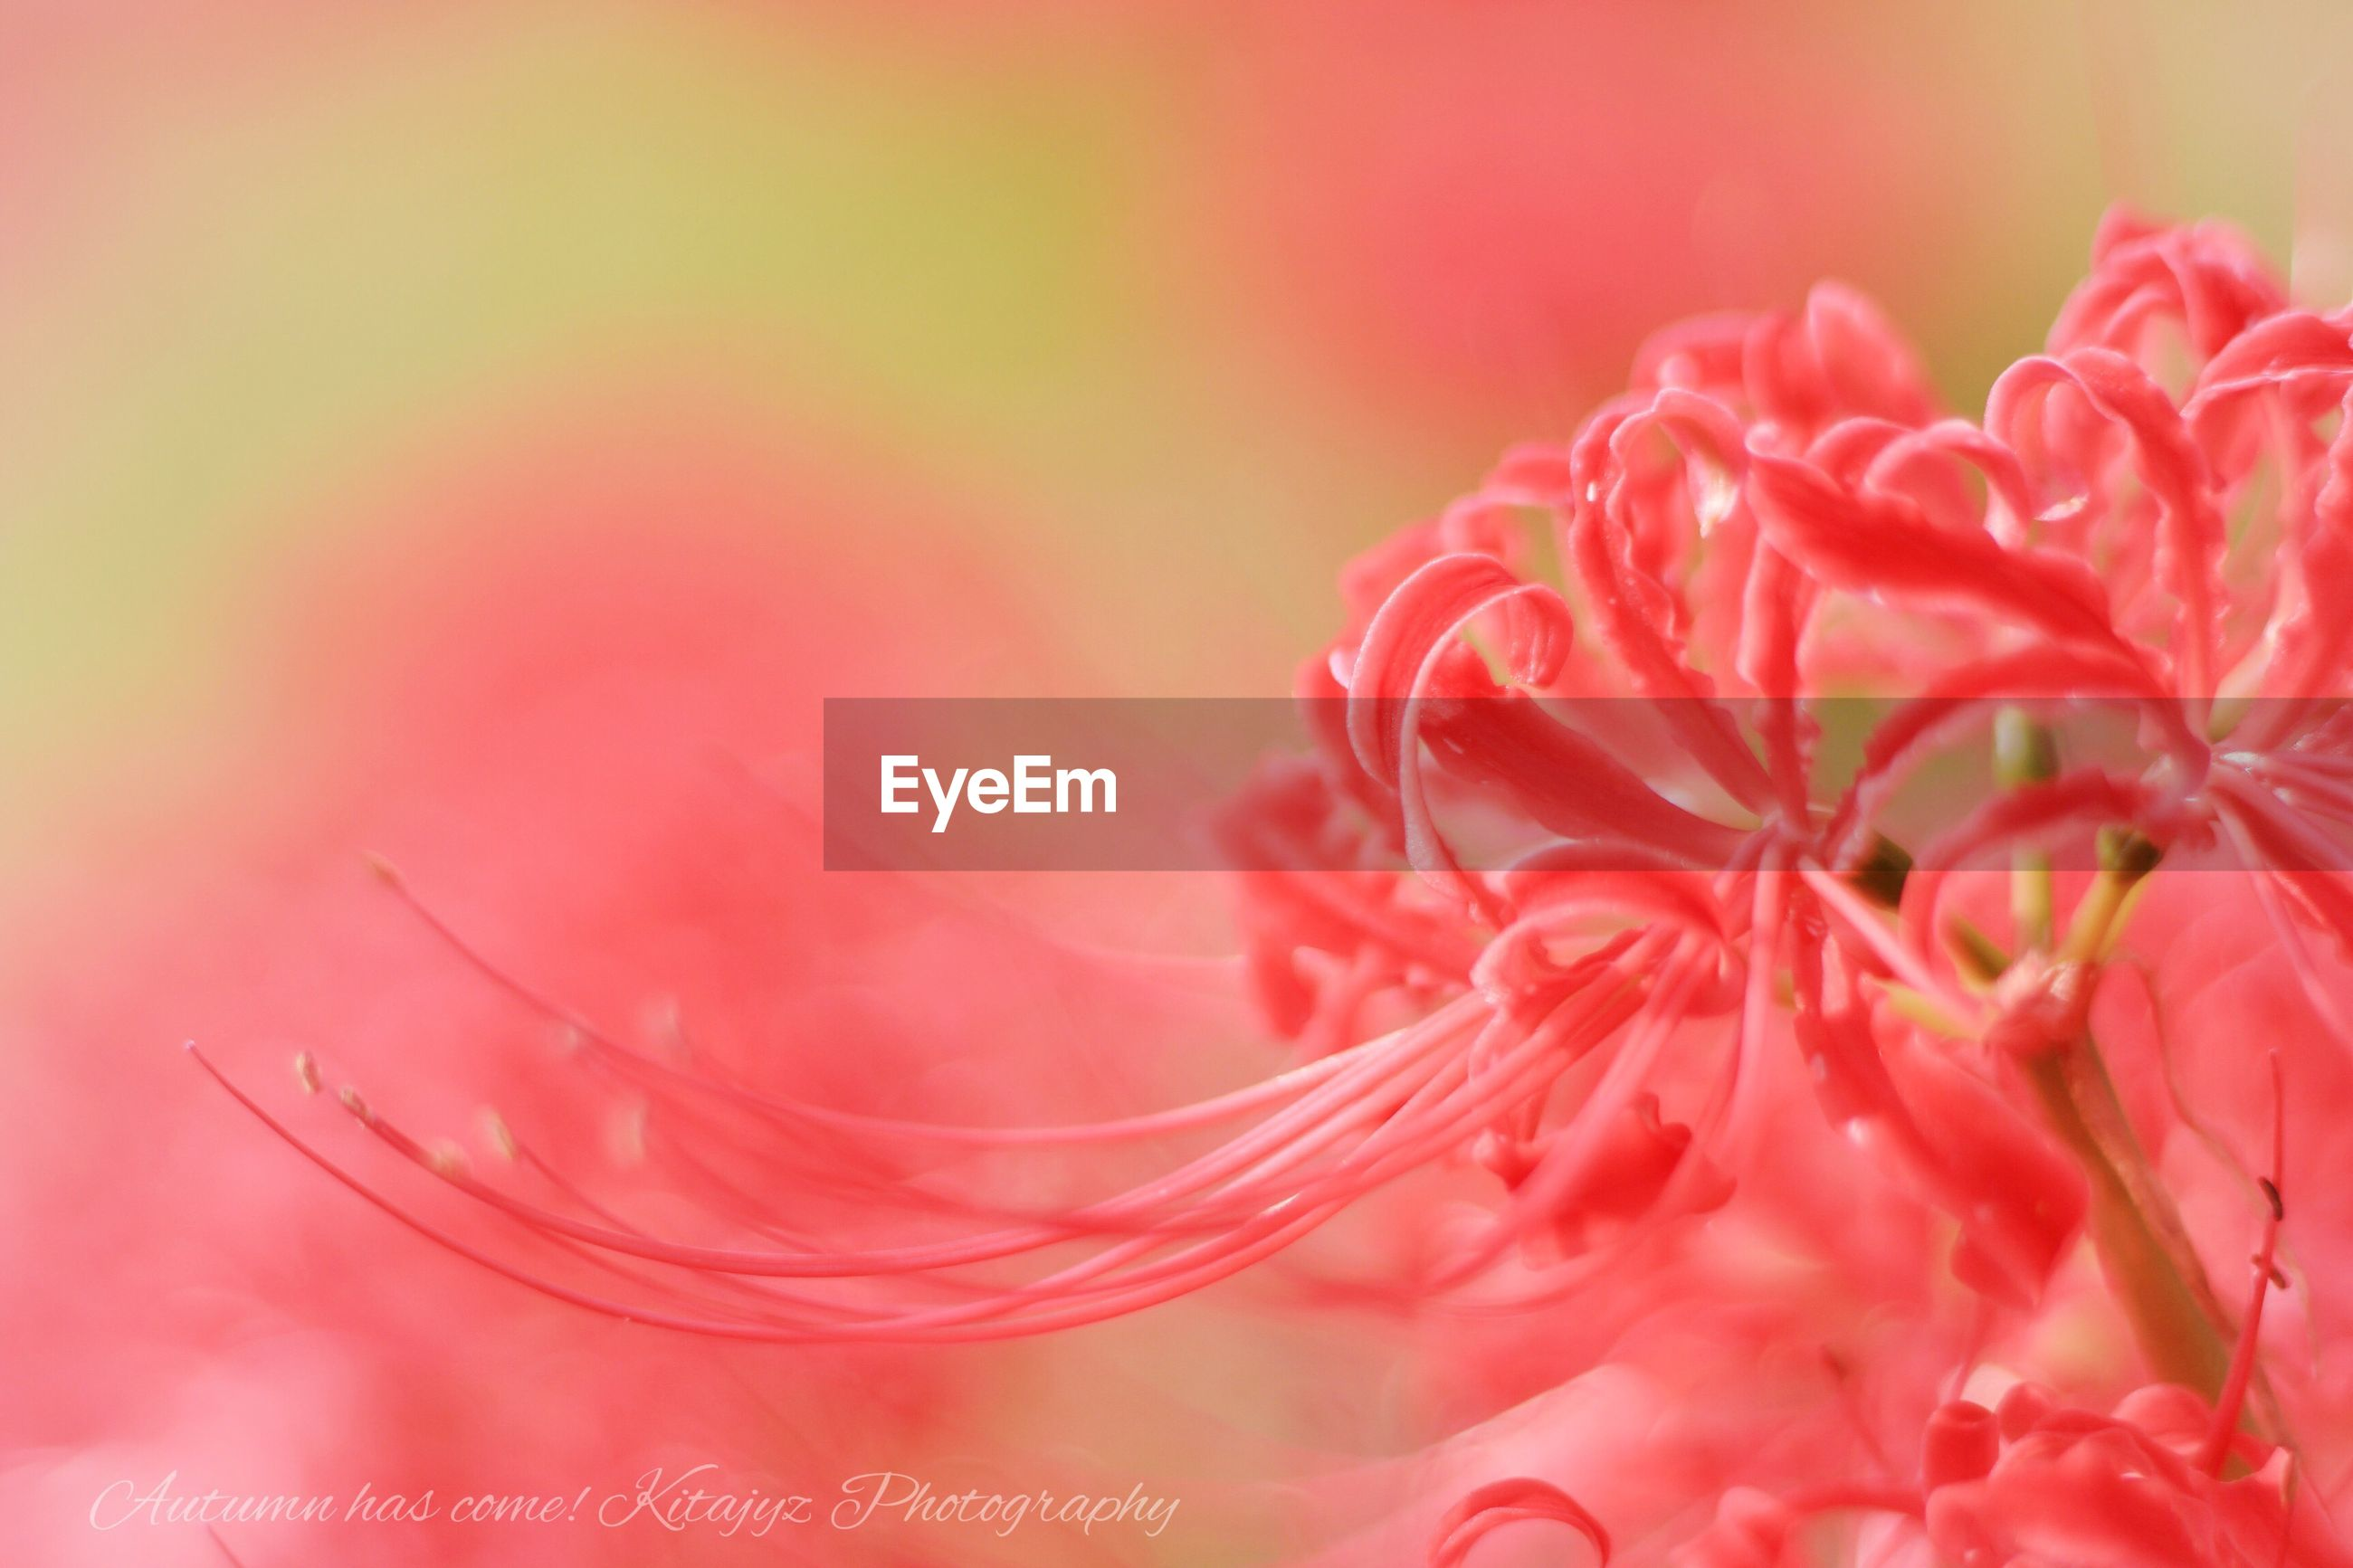 fragility, flower, freshness, petal, close-up, beauty in nature, flower head, selective focus, nature, single flower, pink color, macro, extreme close-up, dew, growth, focus on foreground, vibrant color, day, springtime, softness, blossom, soft focus, full frame, in bloom, scenics, purity, no people, botany